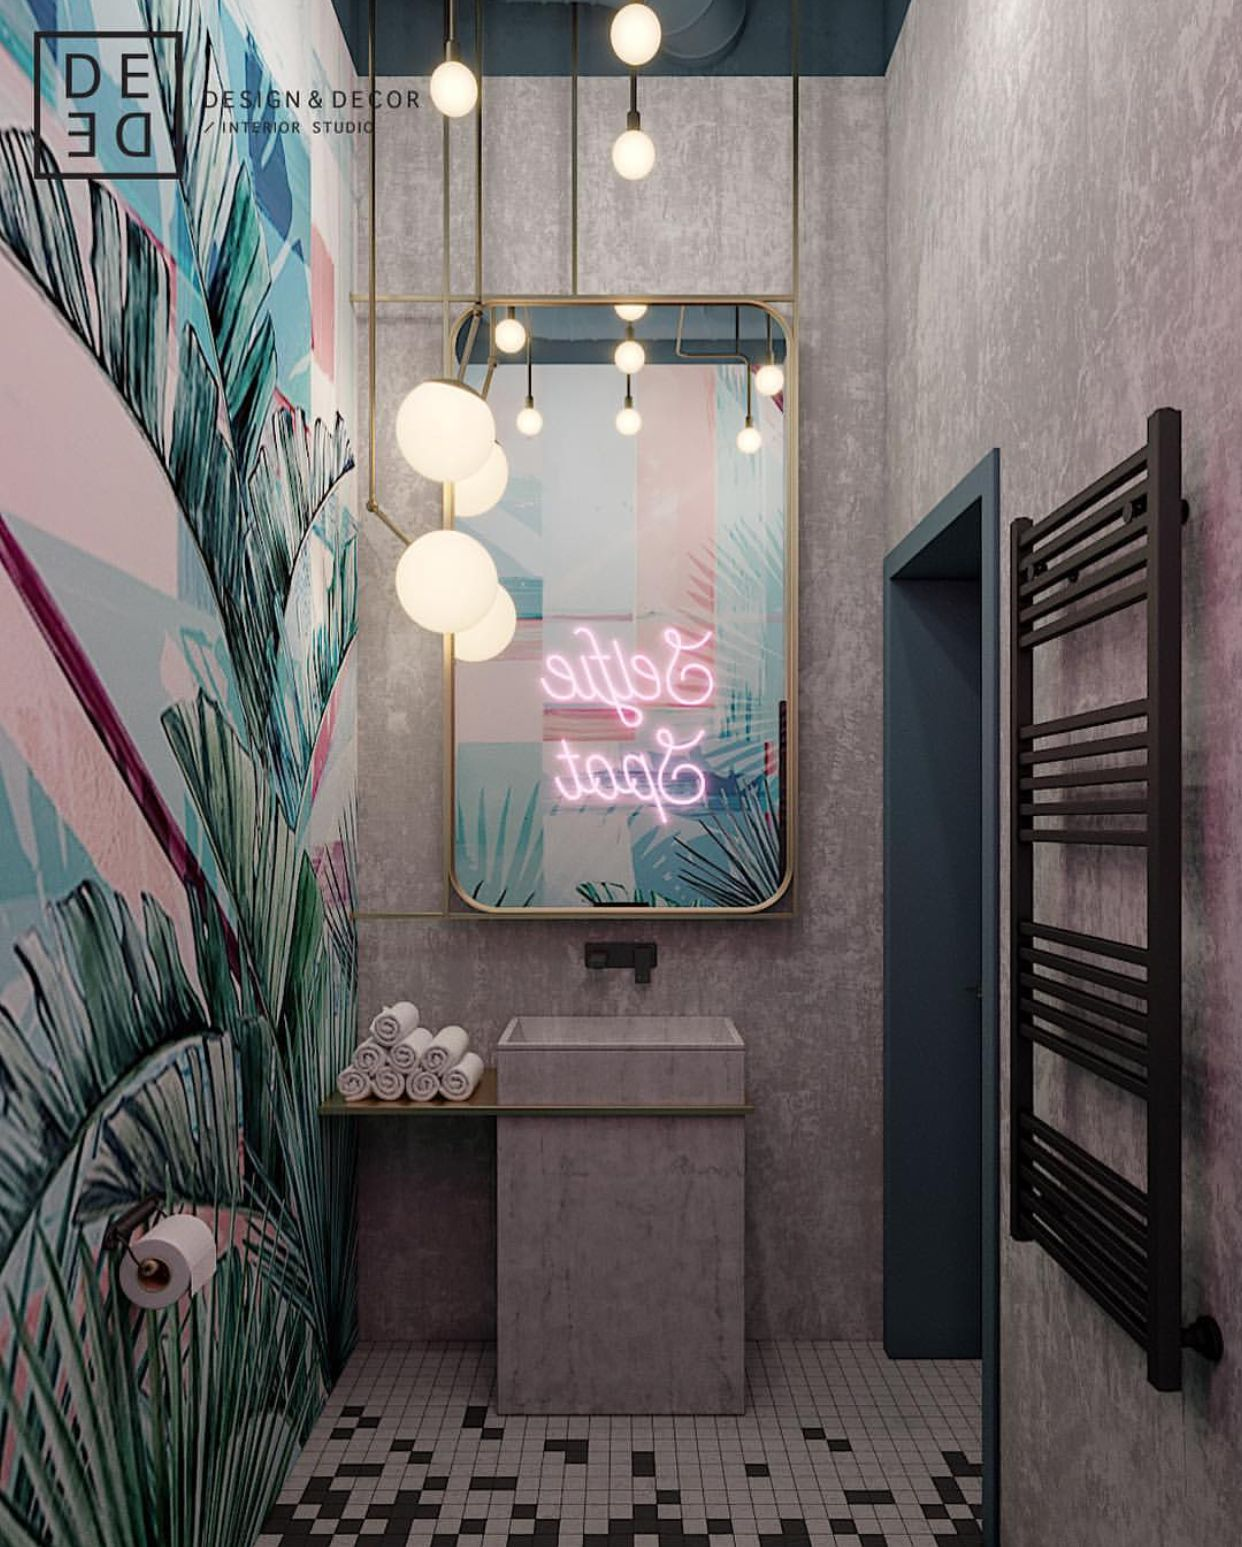 Spot Tbts Salle De Bain Bathroom Selfie Spot Behance In 2019 Home Decor Bathroom